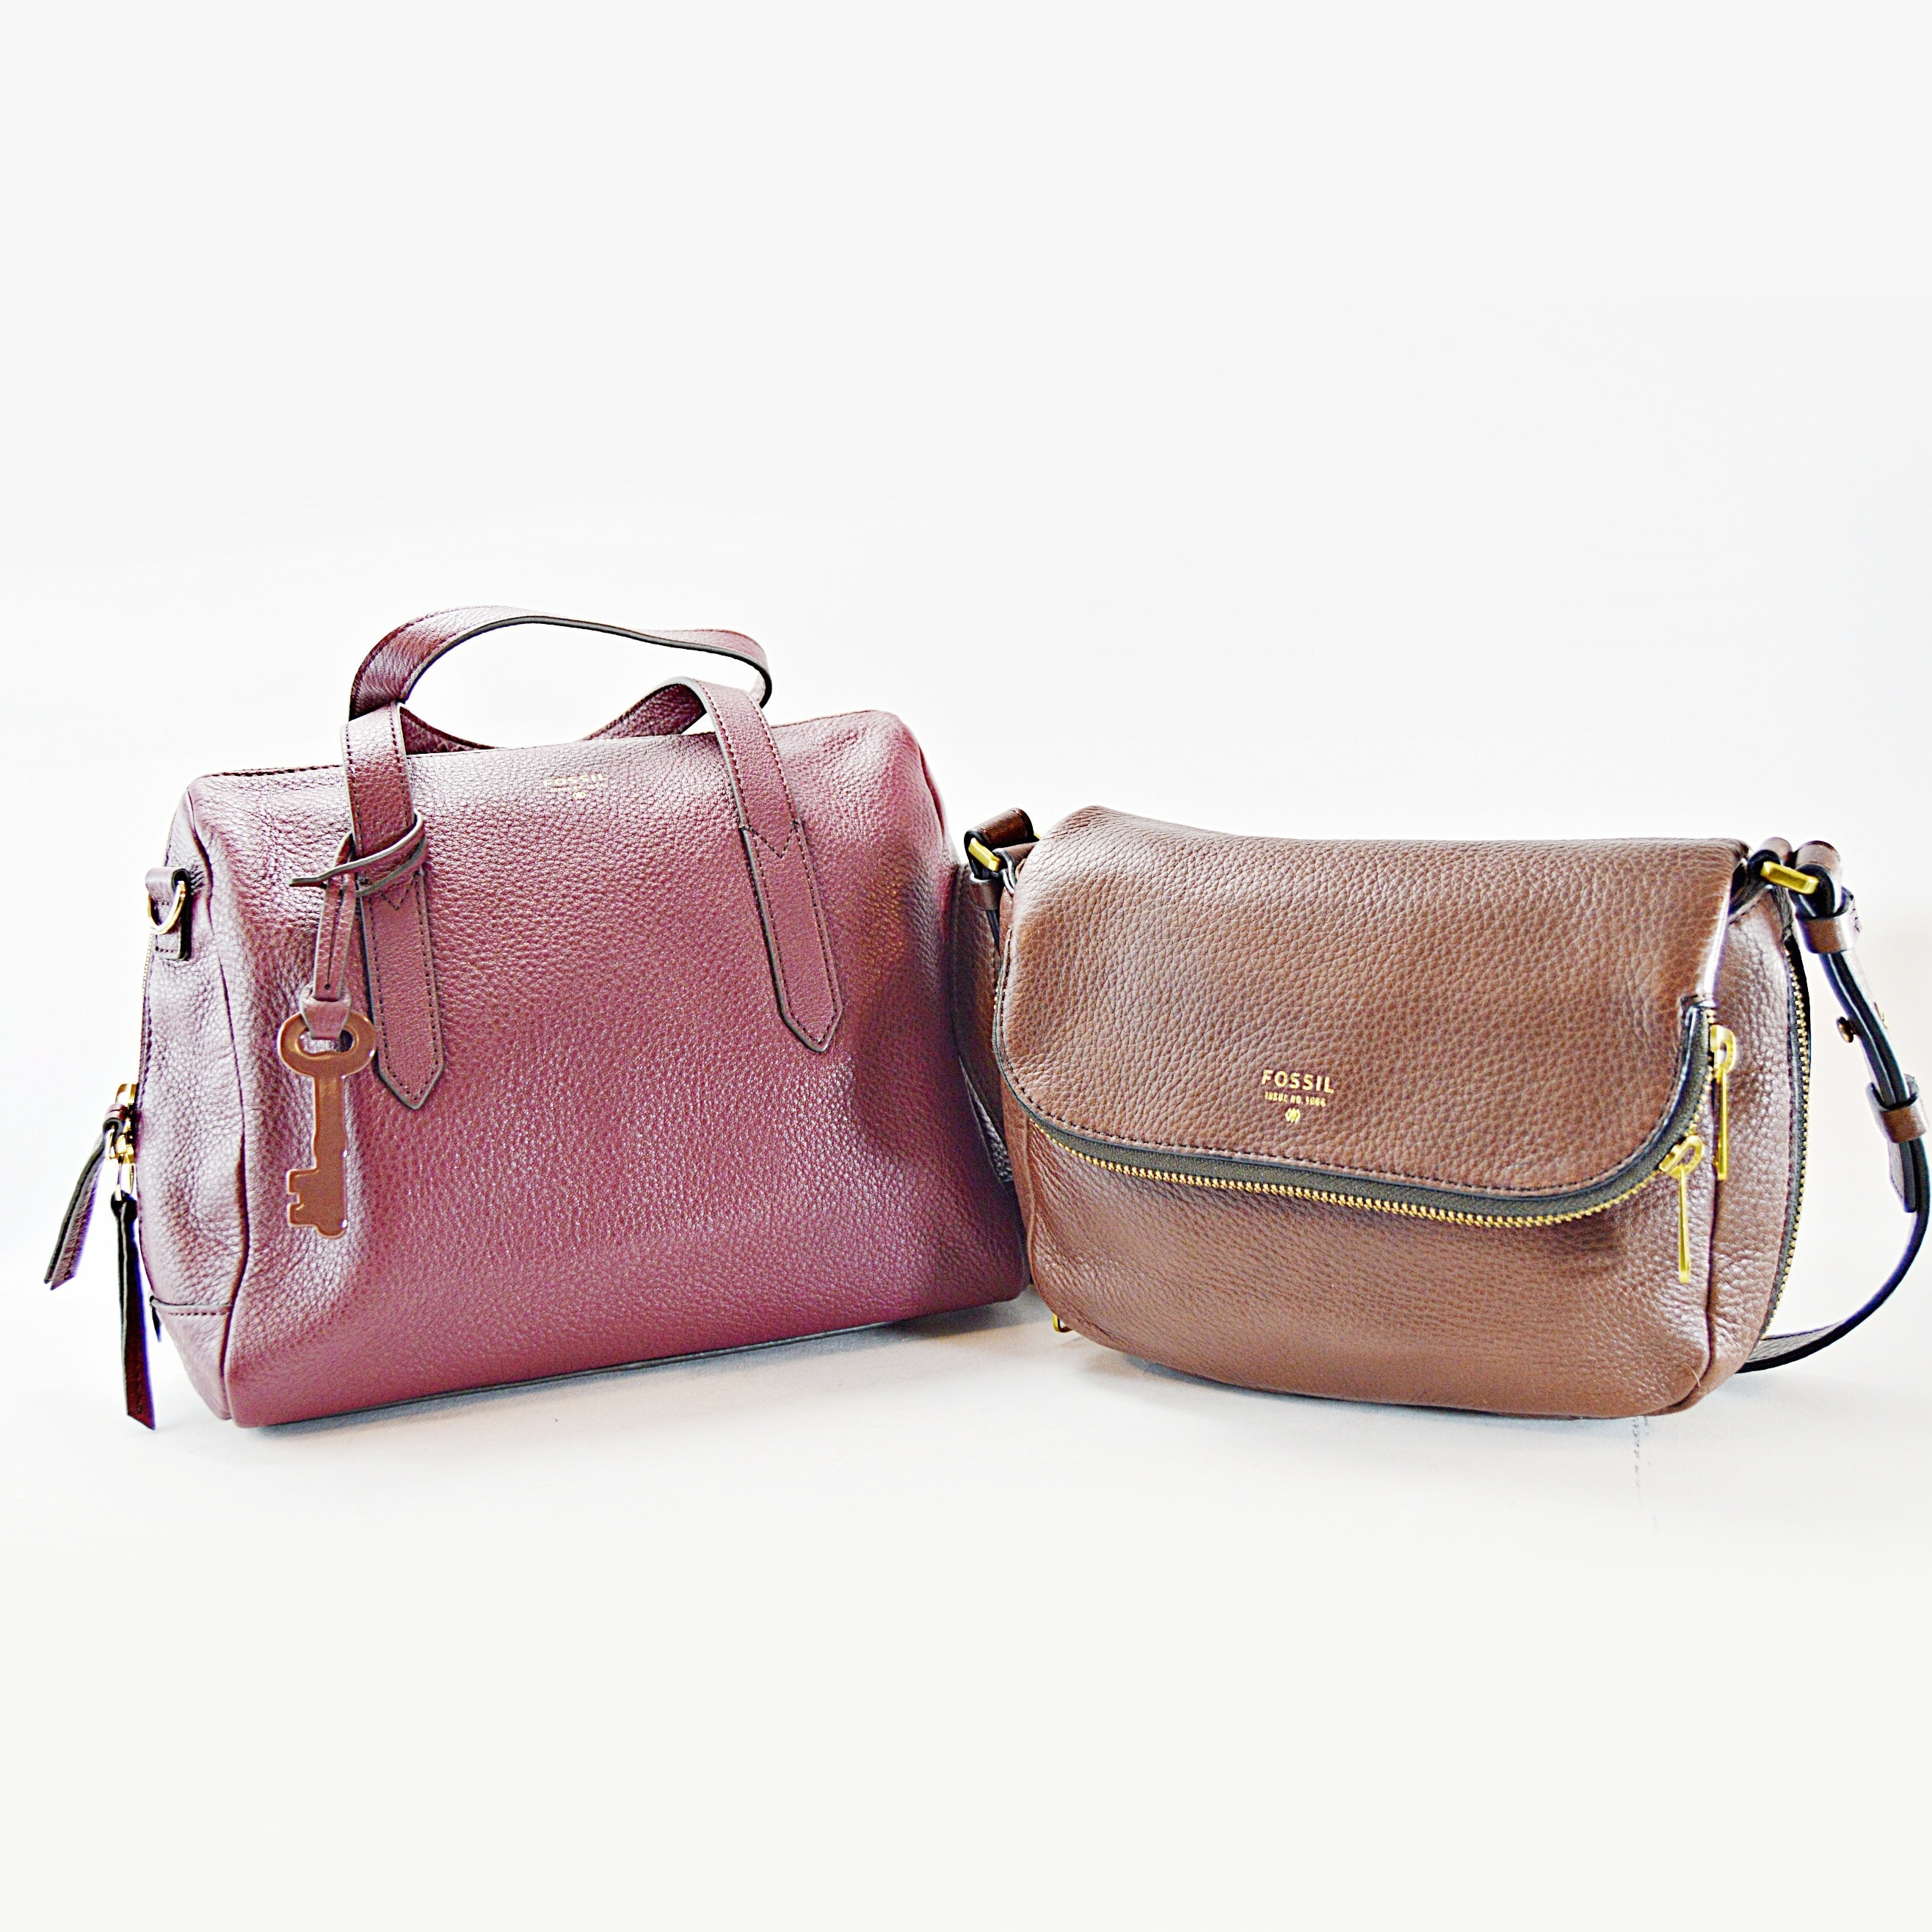 Two Fossil Leather Handbags